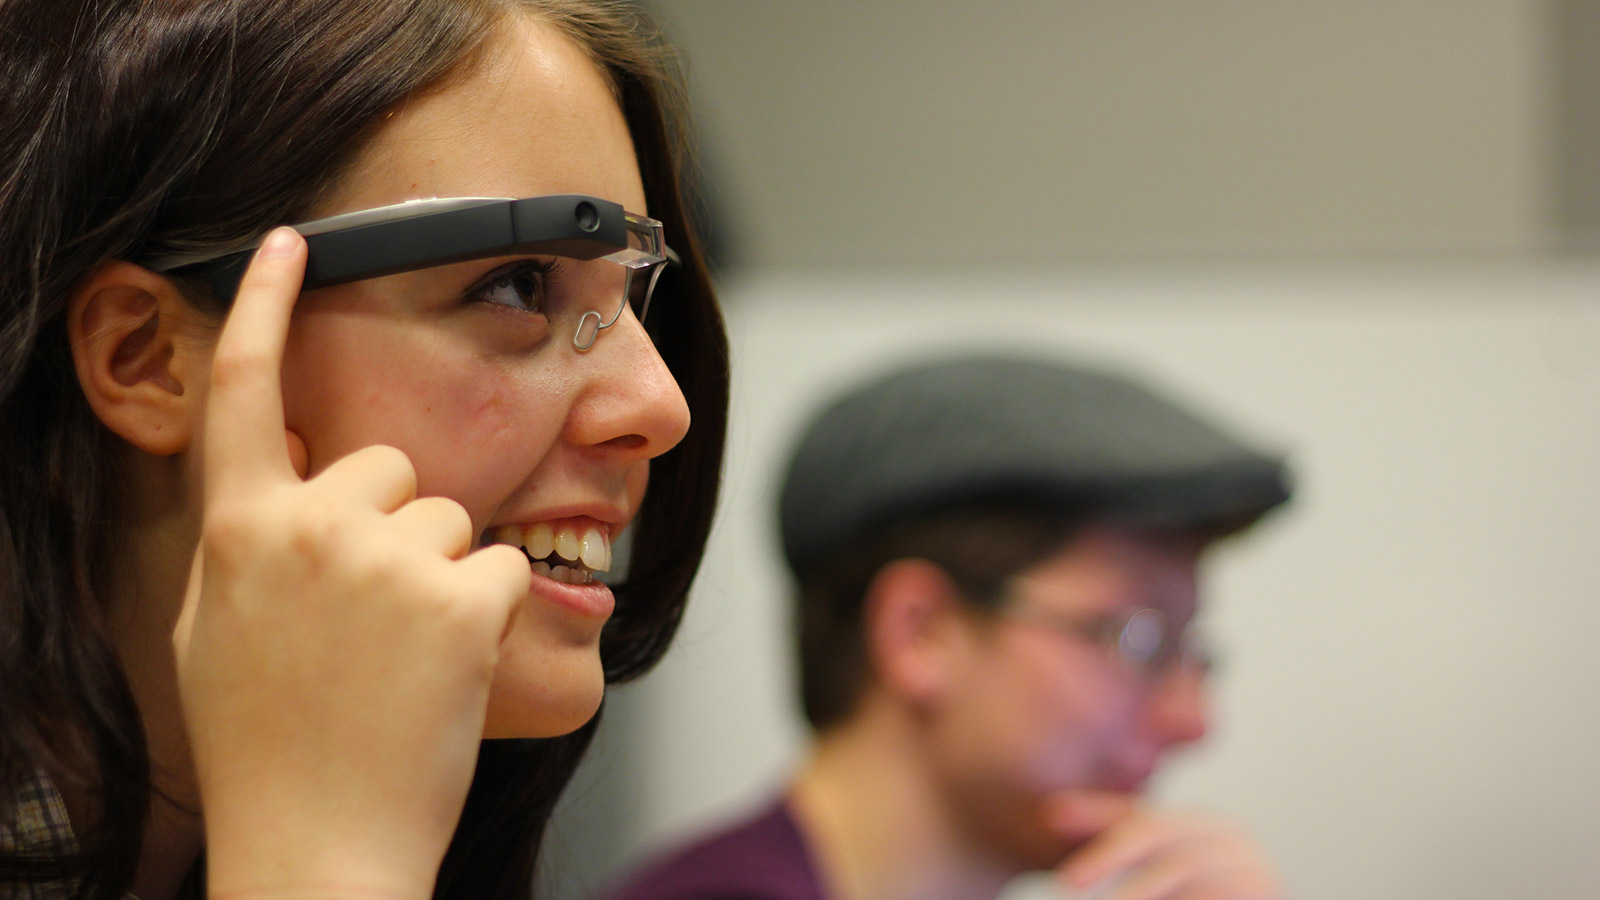 Google Glass - courtesy of CoJMC tools and technology